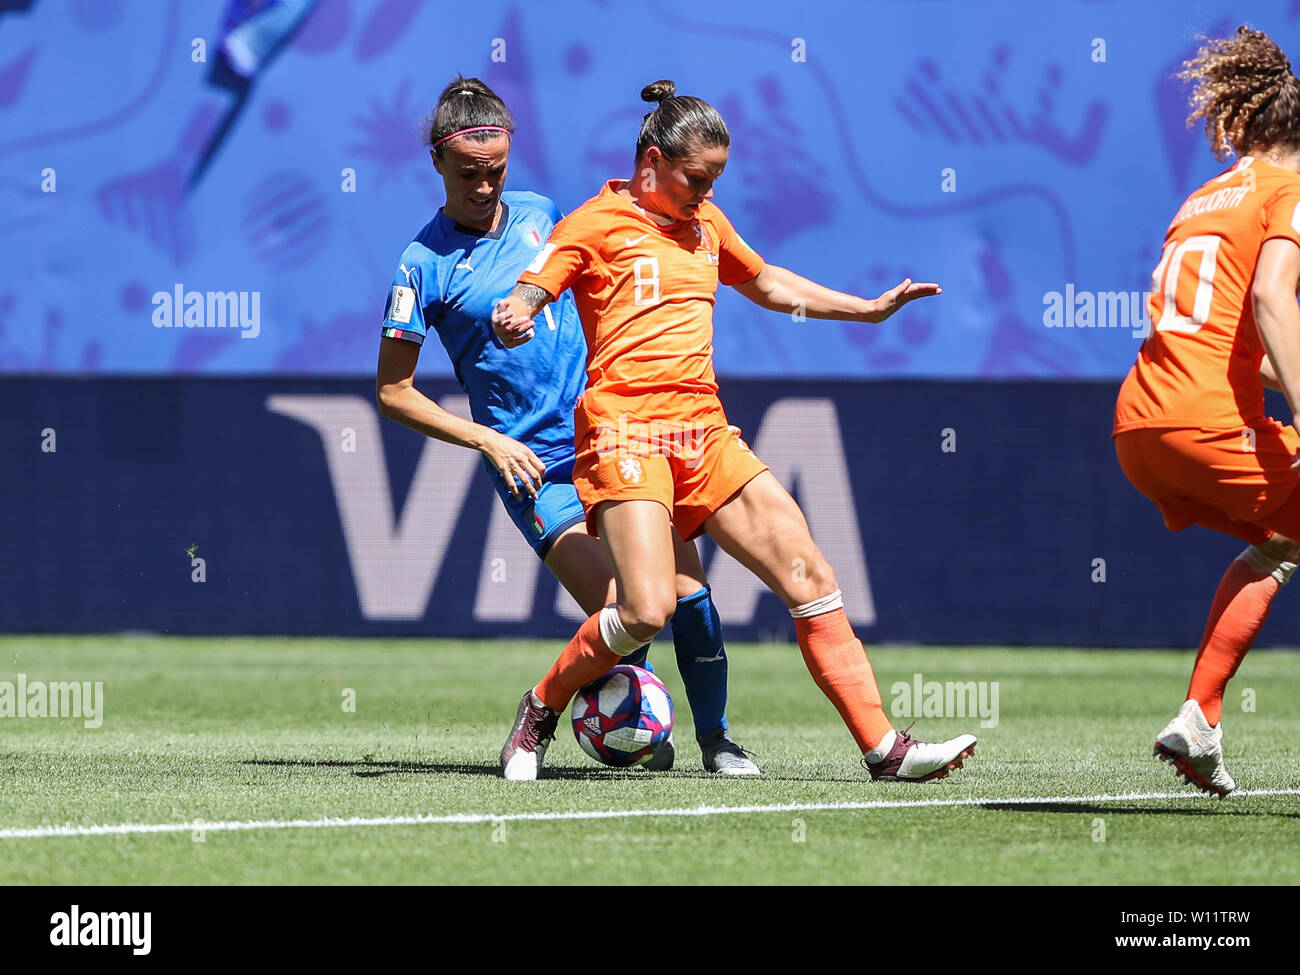 Valenciennes, France. 29th June, 2019. Barbara Bonansea (L) of Italy vies with Sherida Spitse of the Netherlands during the quarterfinal between Italy and the Netherlands at the 2019 FIFA Women's World Cup in Valenciennes, France, June 29, 2019. Credit: Shan Yuqi/Xinhua/Alamy Live News Stock Photo